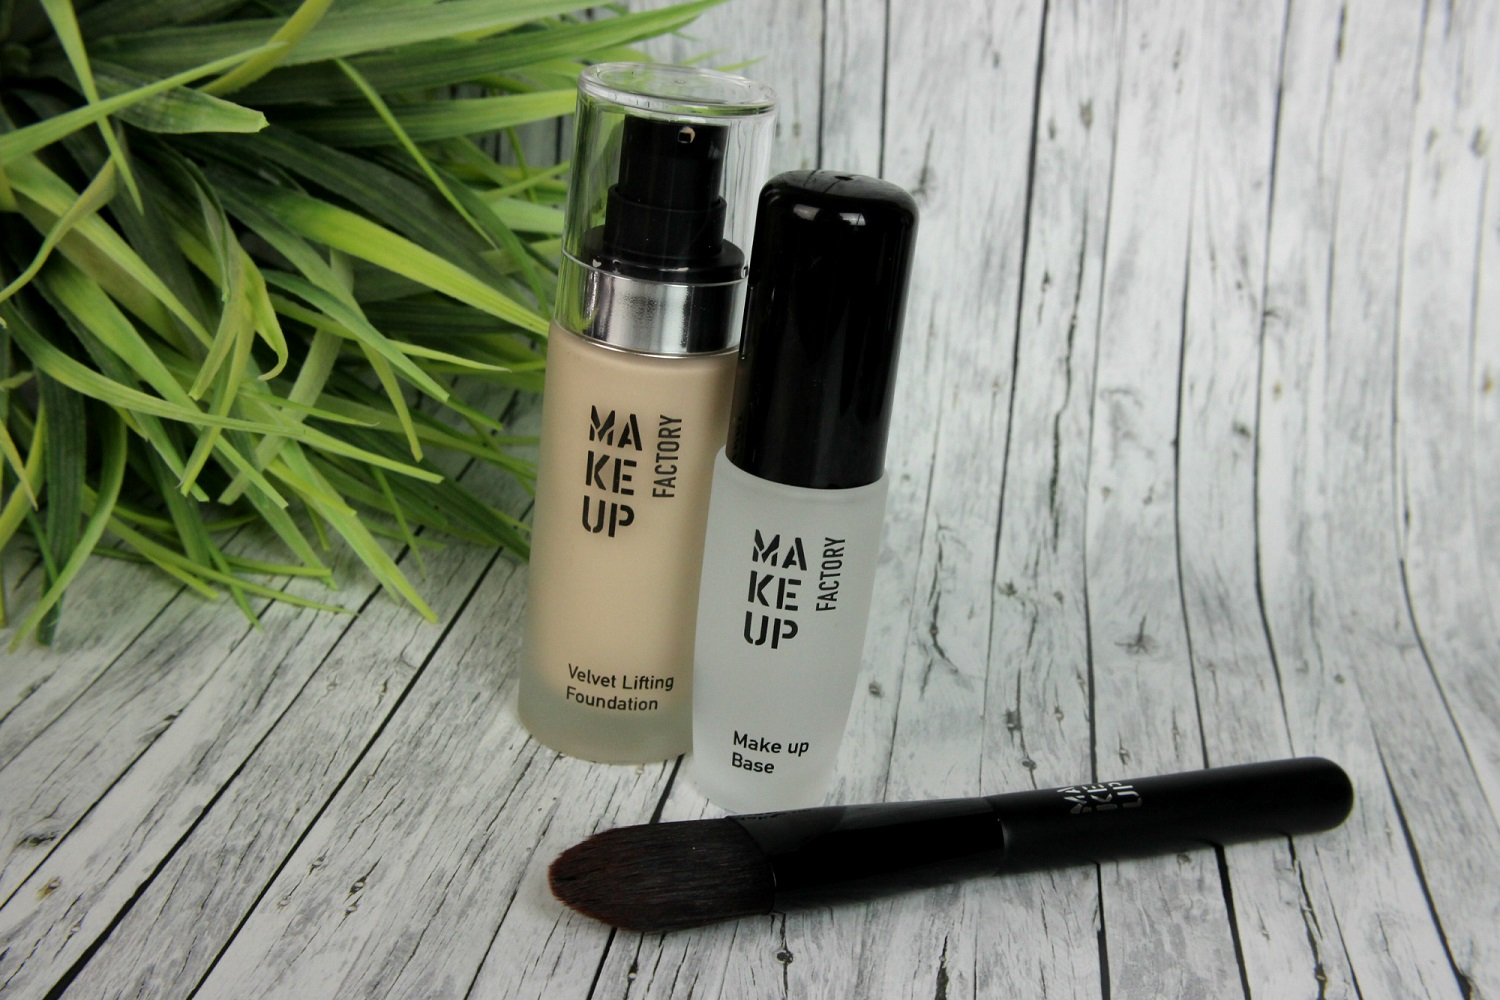 abendlook, augenbrauen, beauty, cosmetics, drogerie, lidschatten, lidstrich, lippenstift, make up, Make up Factory, make up factory academy, mascara, muf, müller, natürlicher teint, review, tutorial, tutorials,